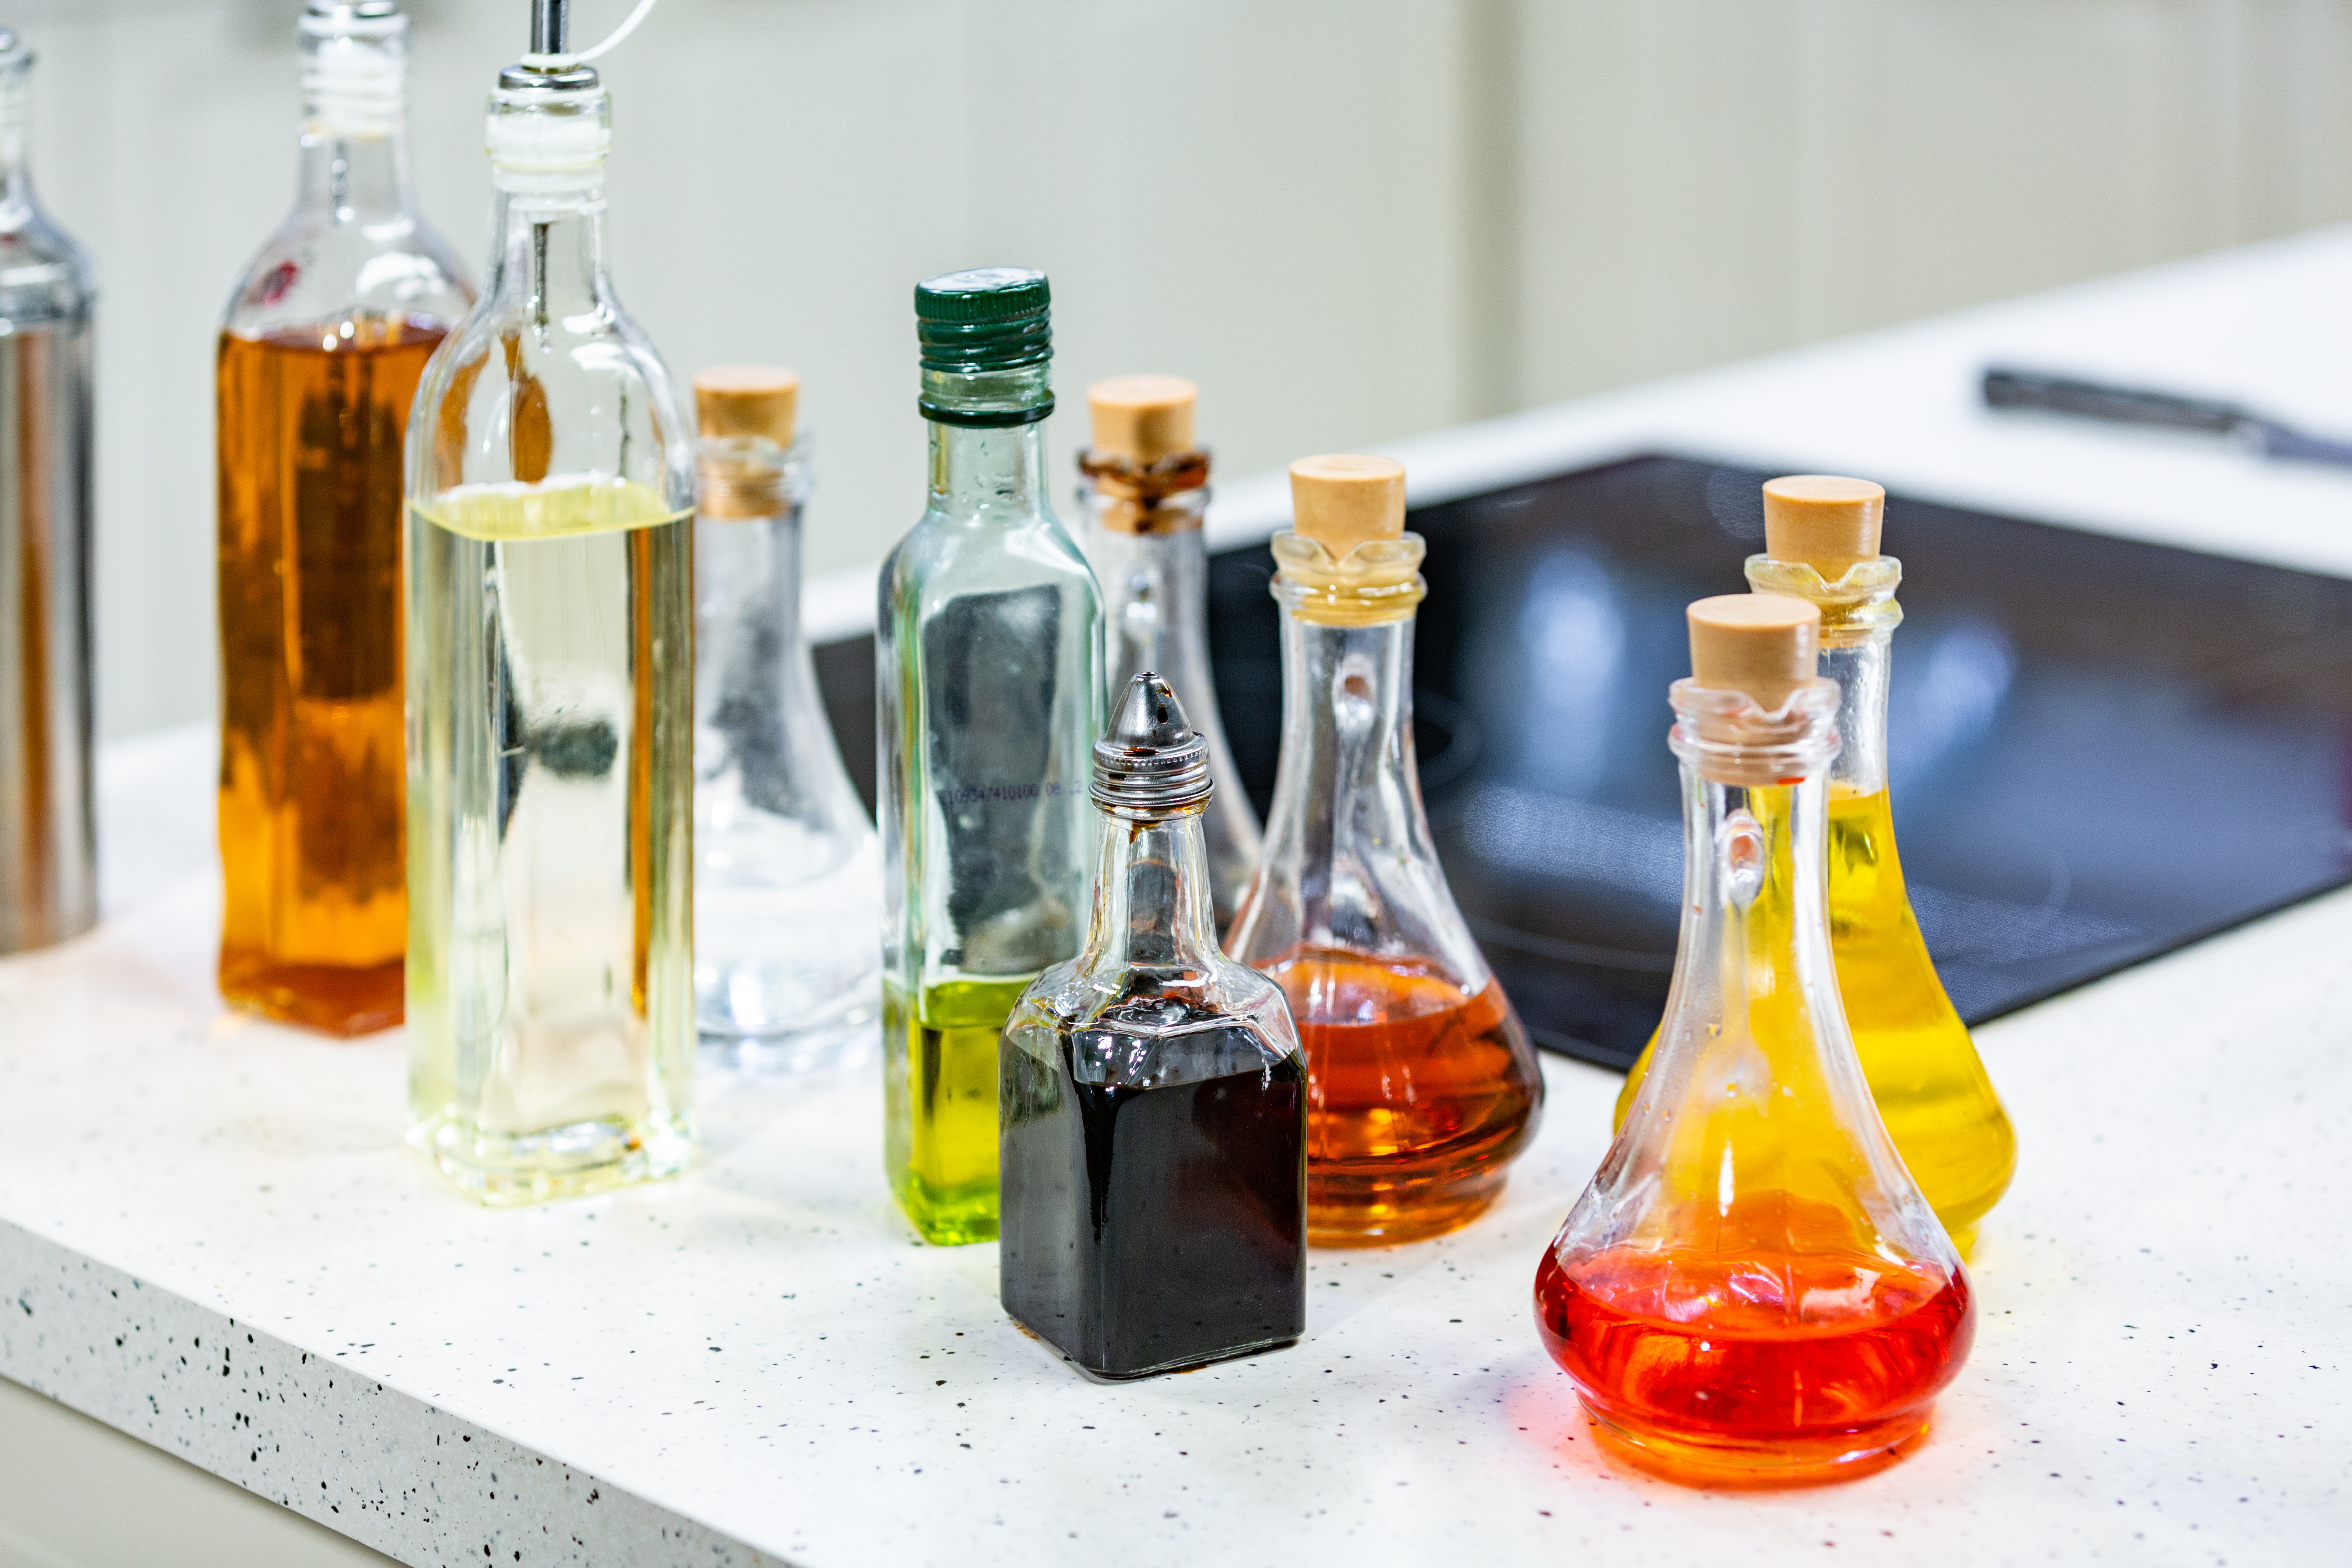 Small bottles of flavored olive oil and balsamic vinegar in the kitchen.